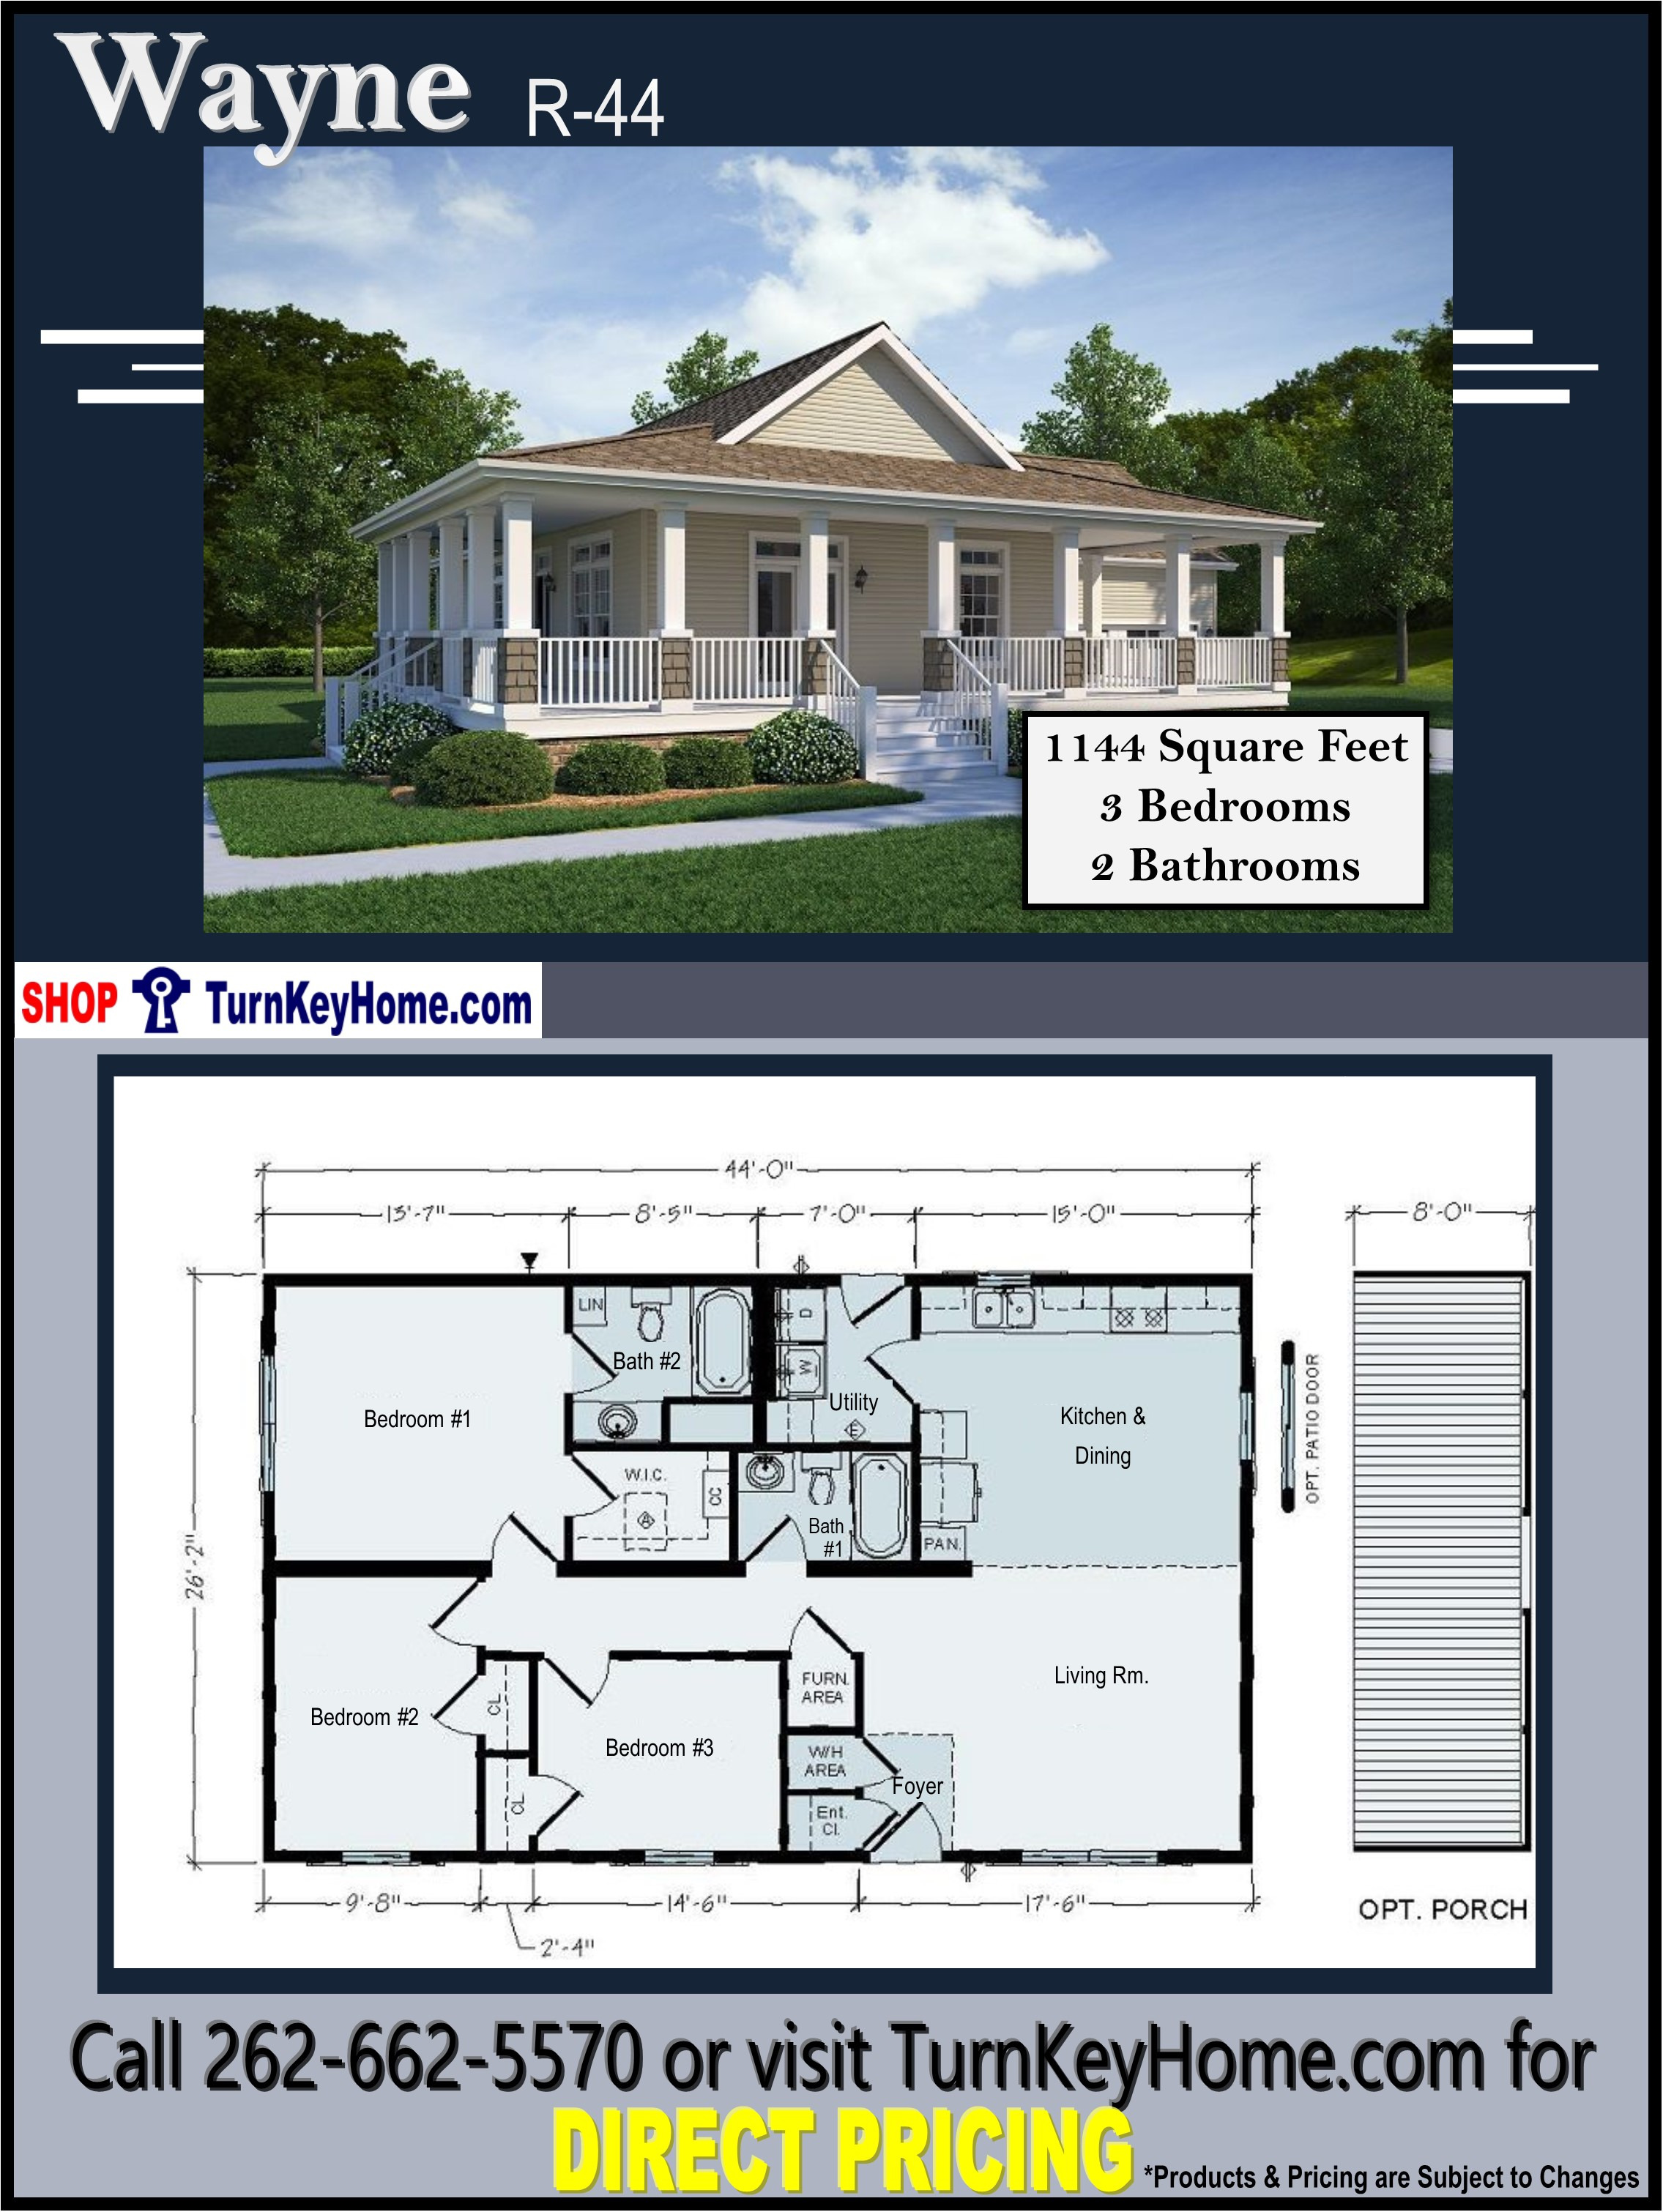 Wayne Homes House Plans Lovely Wayne Ranch Home 3 Bed 2 Bath Plan 1144 Sf Priced From